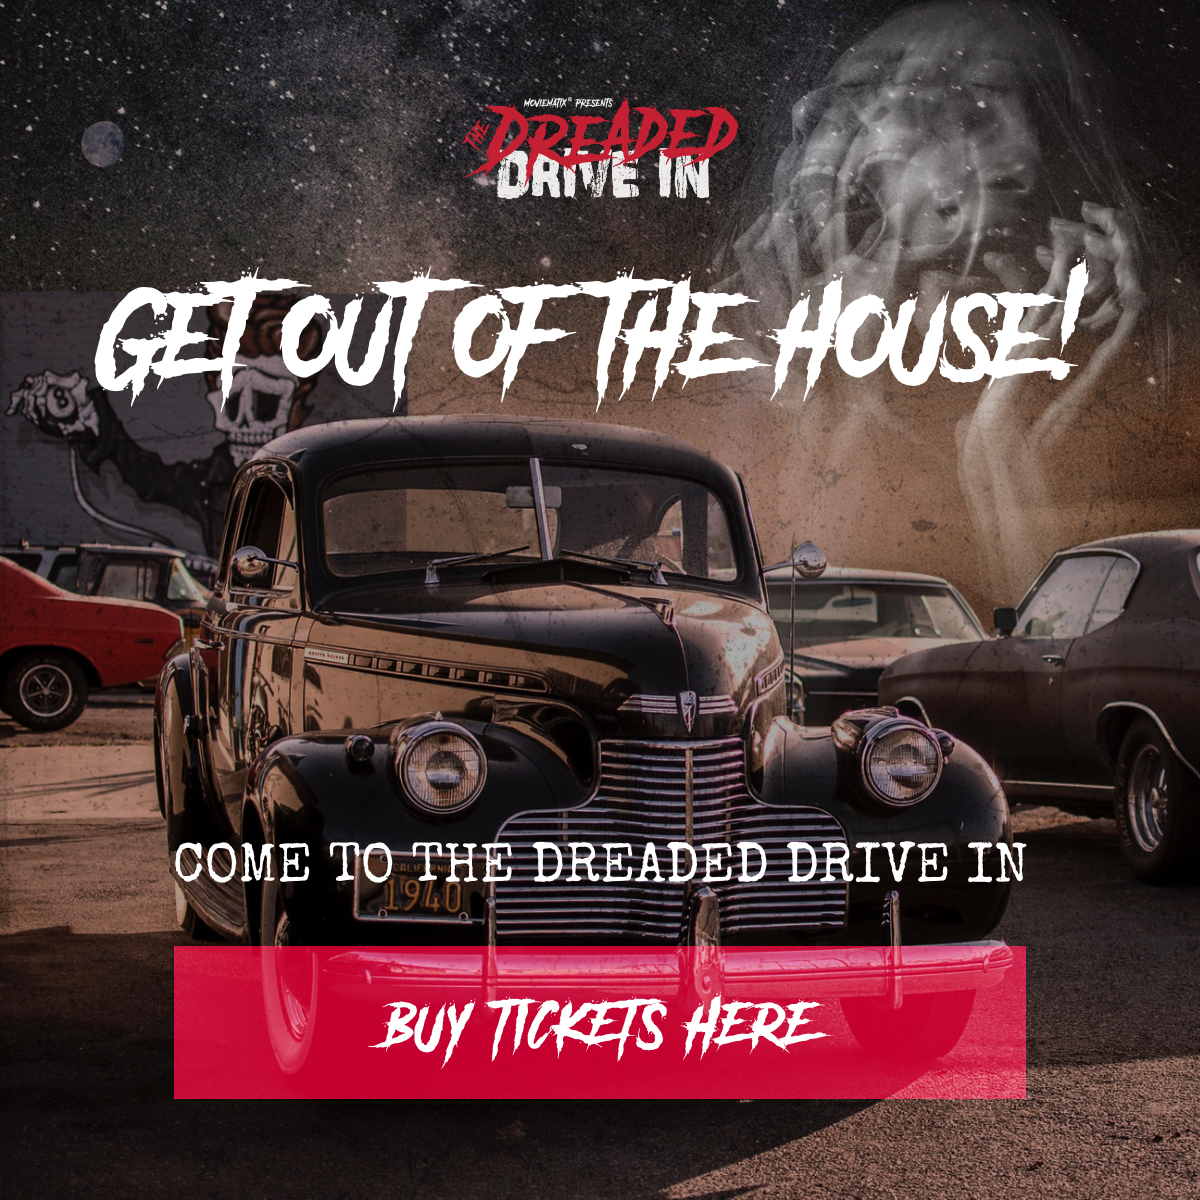 Cinema of horrors hosted by the Dreaded Drive in